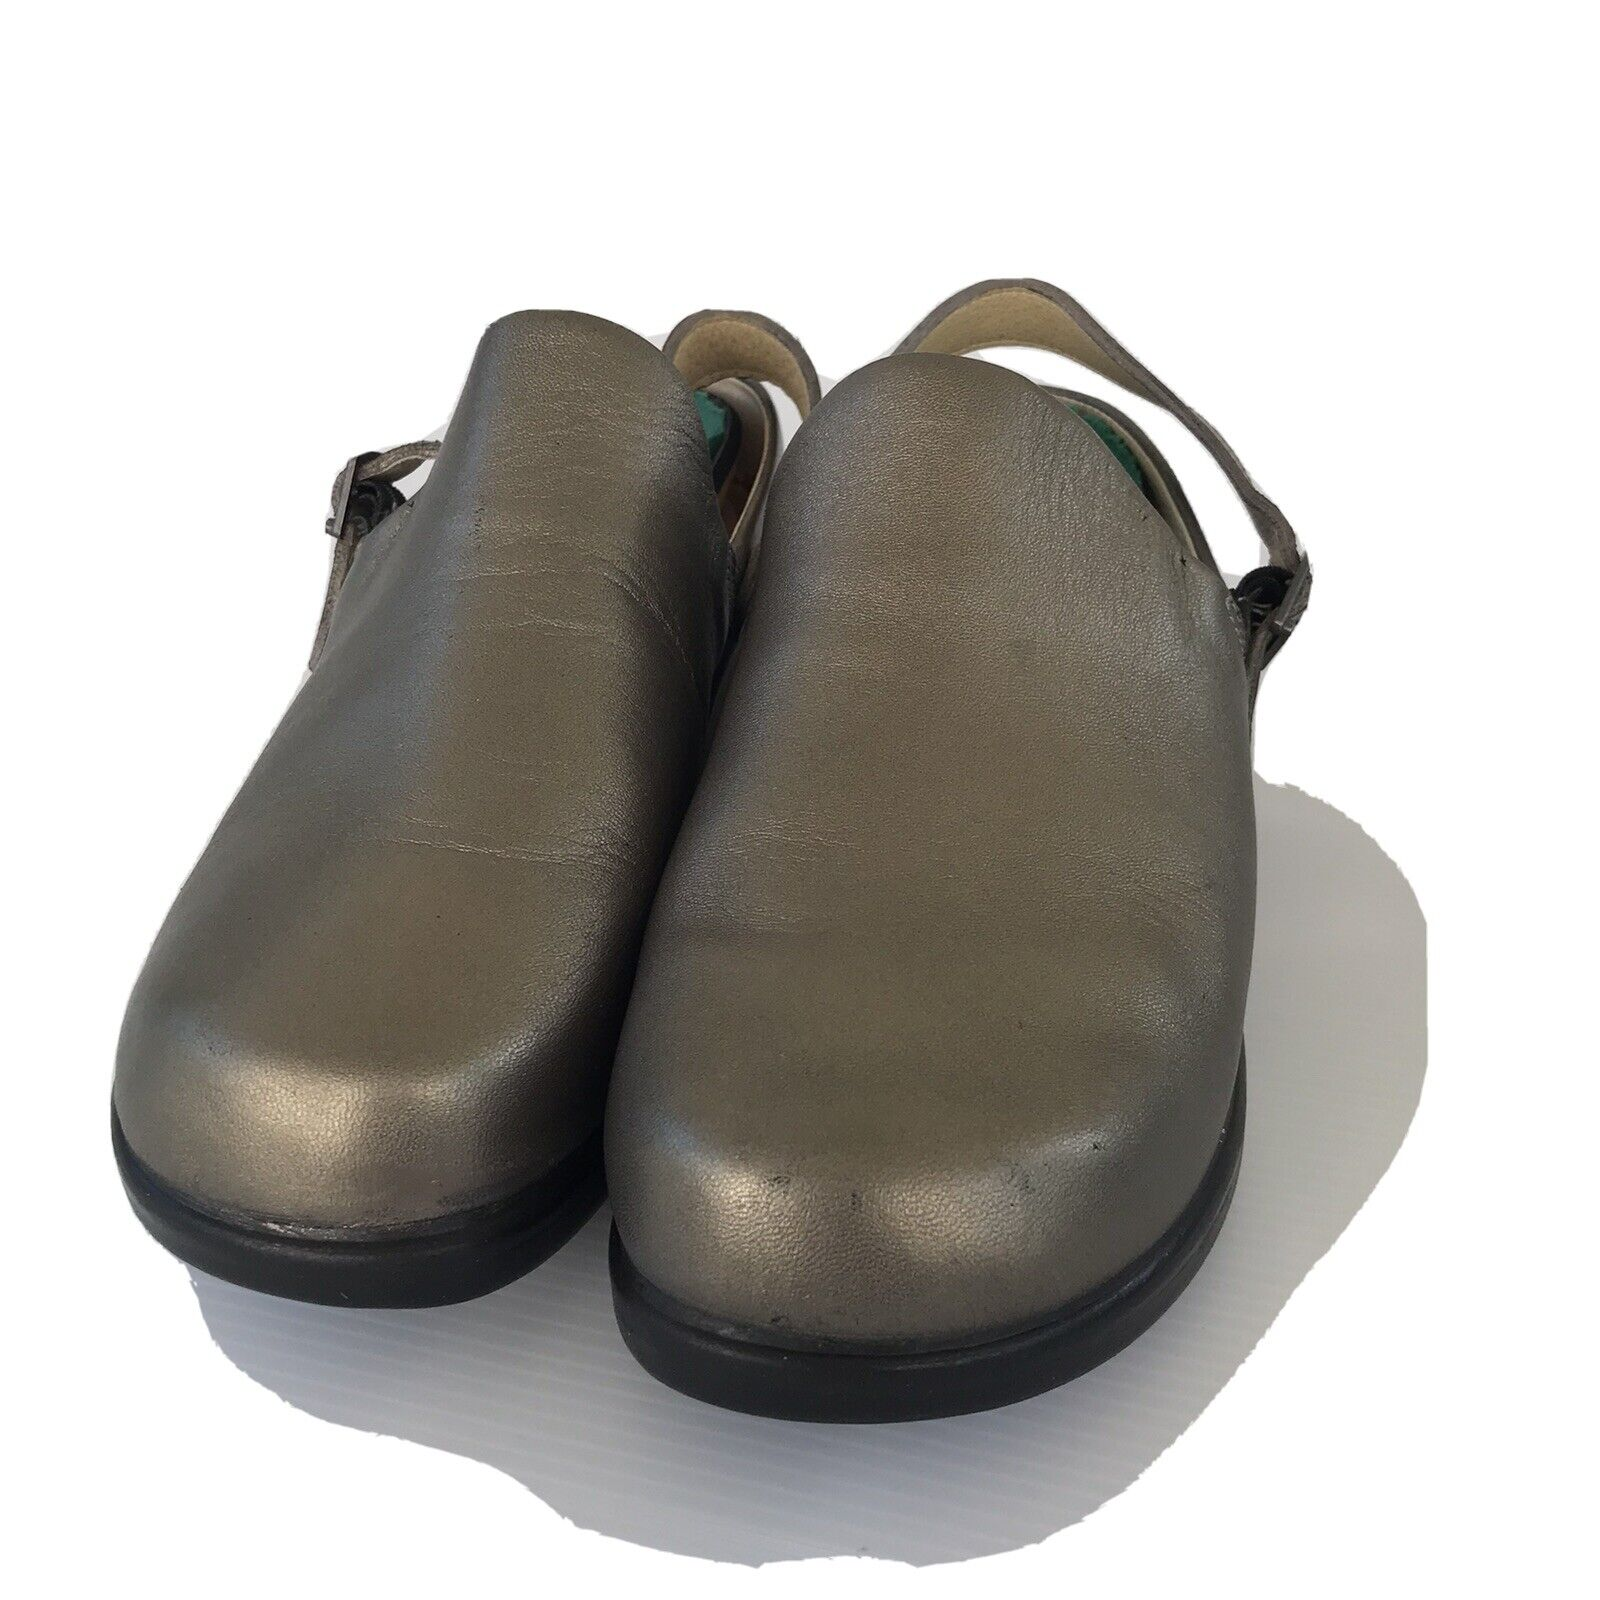 Ana-Tech Copper Green Leather Shoes 41clogs Pre Owned Professional Shoes Size 8.